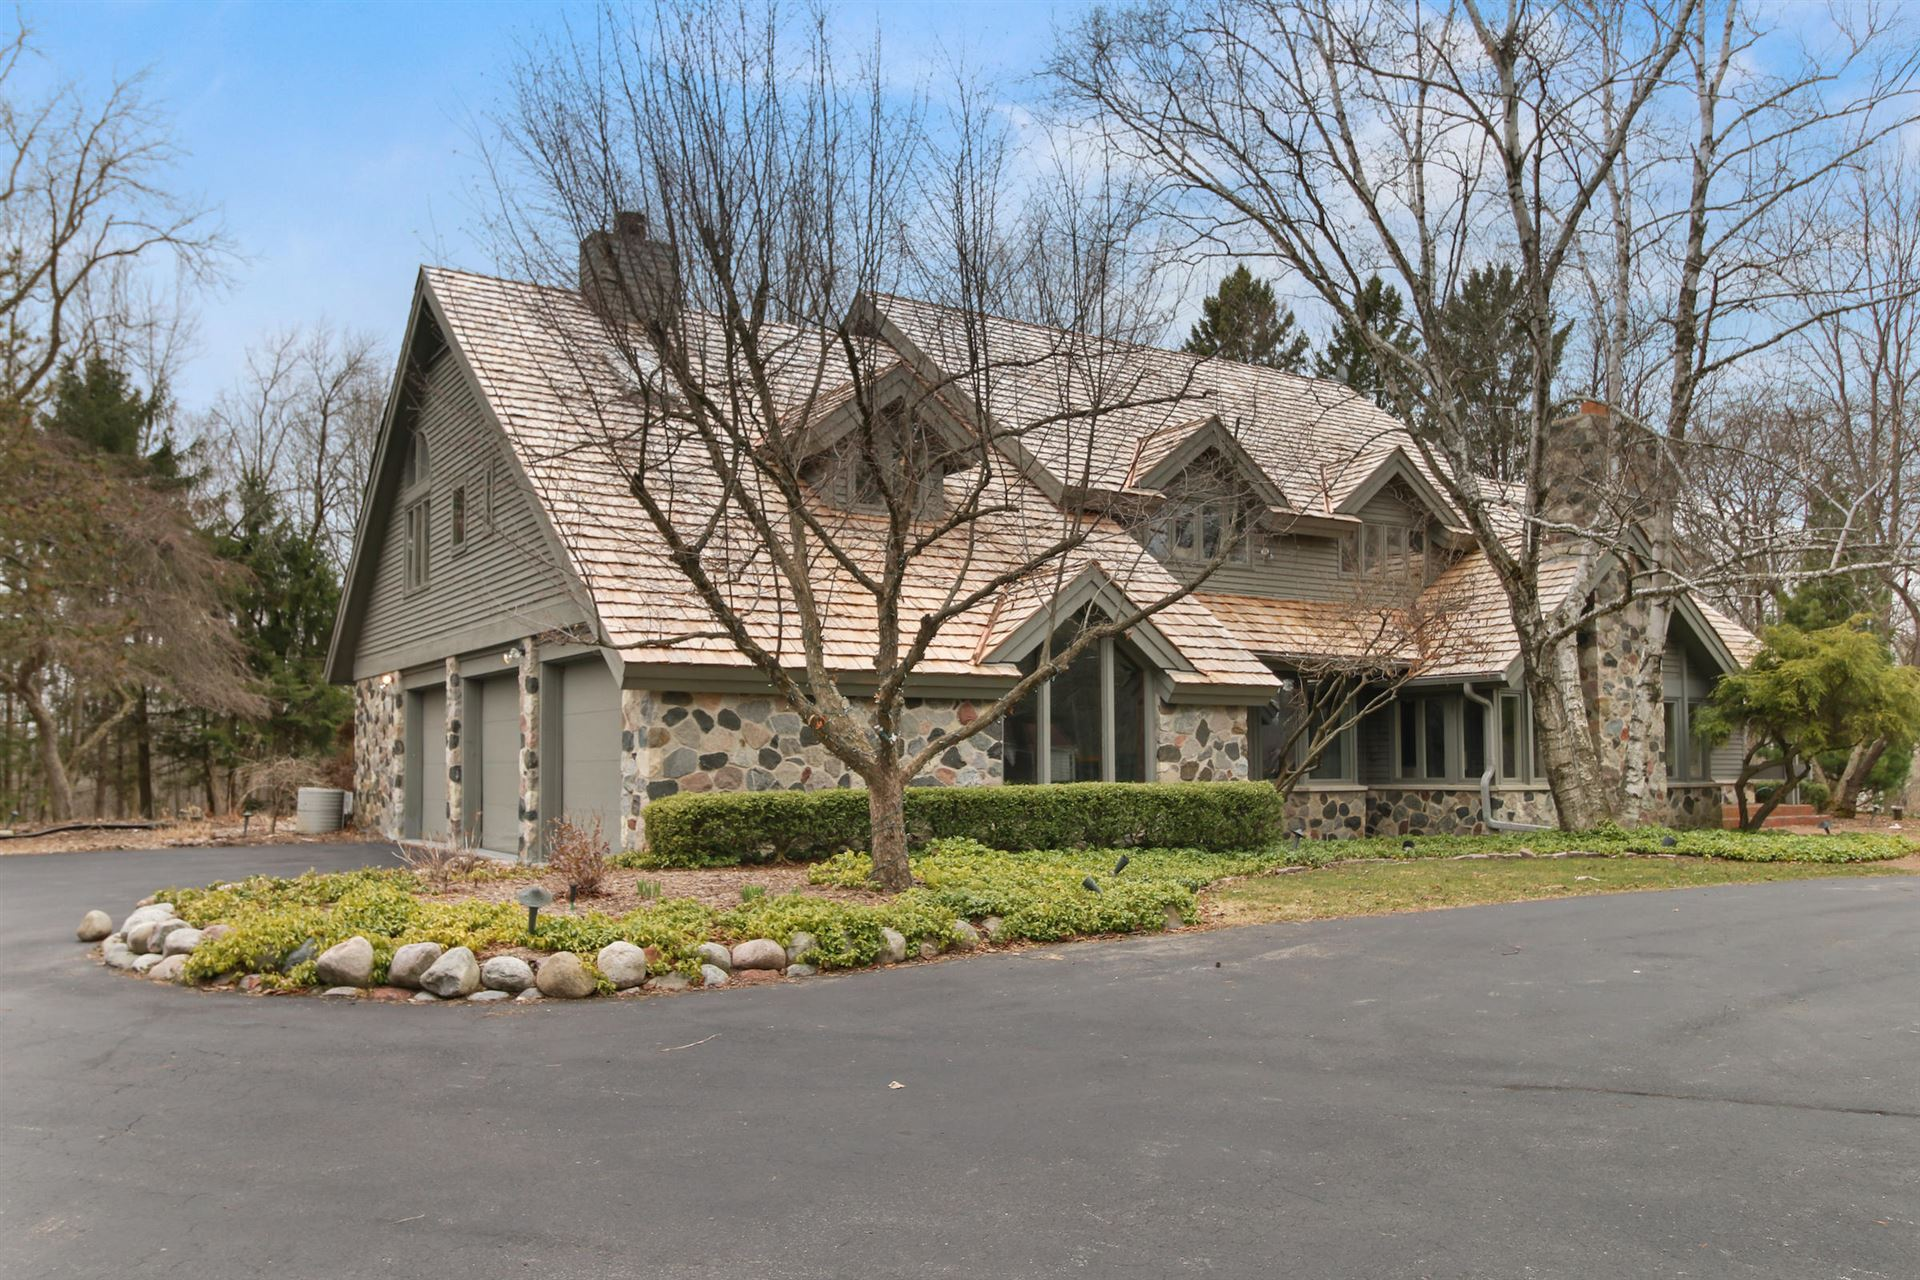 3131 W Donges Bay Rd, Mequon, WI 53092 - #: 1632729